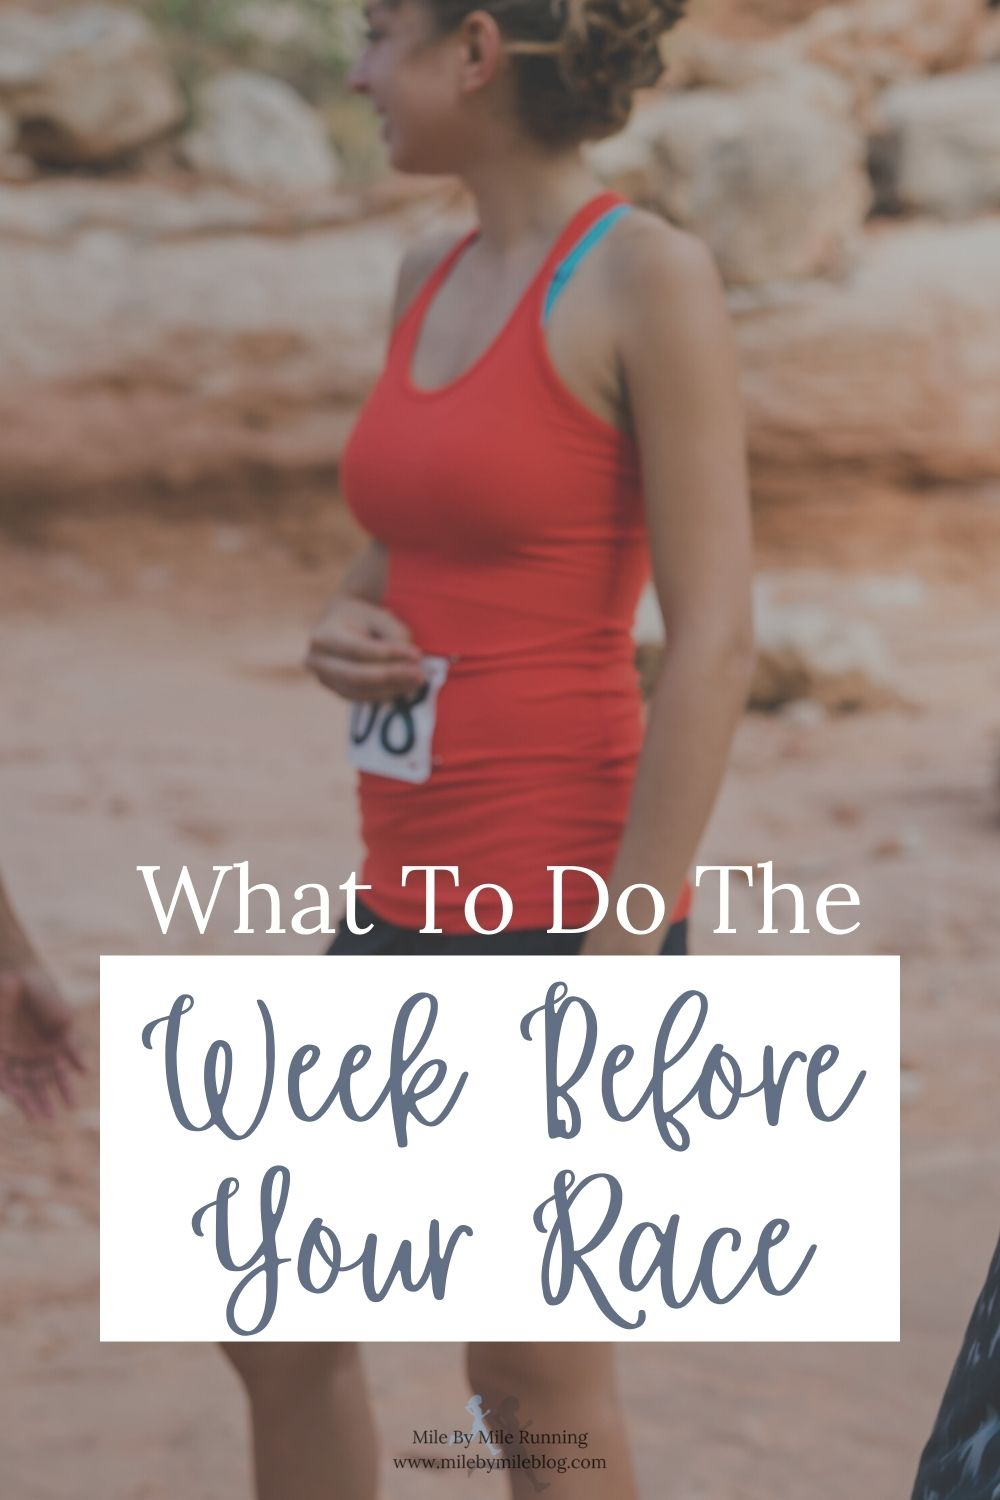 """As many of us are now back to in-person racing, we are all trying to remember all the logistics of how to prepare for a race. We talked about the taper period, but what are the last minute """"to-dos"""" that you should focus on during the last week before your race? This is usually when many of us are feeling anxious as the race is getting closer and we aren't running as many miles. Here are some ideas to keep you feeling positive, focused, and productive."""